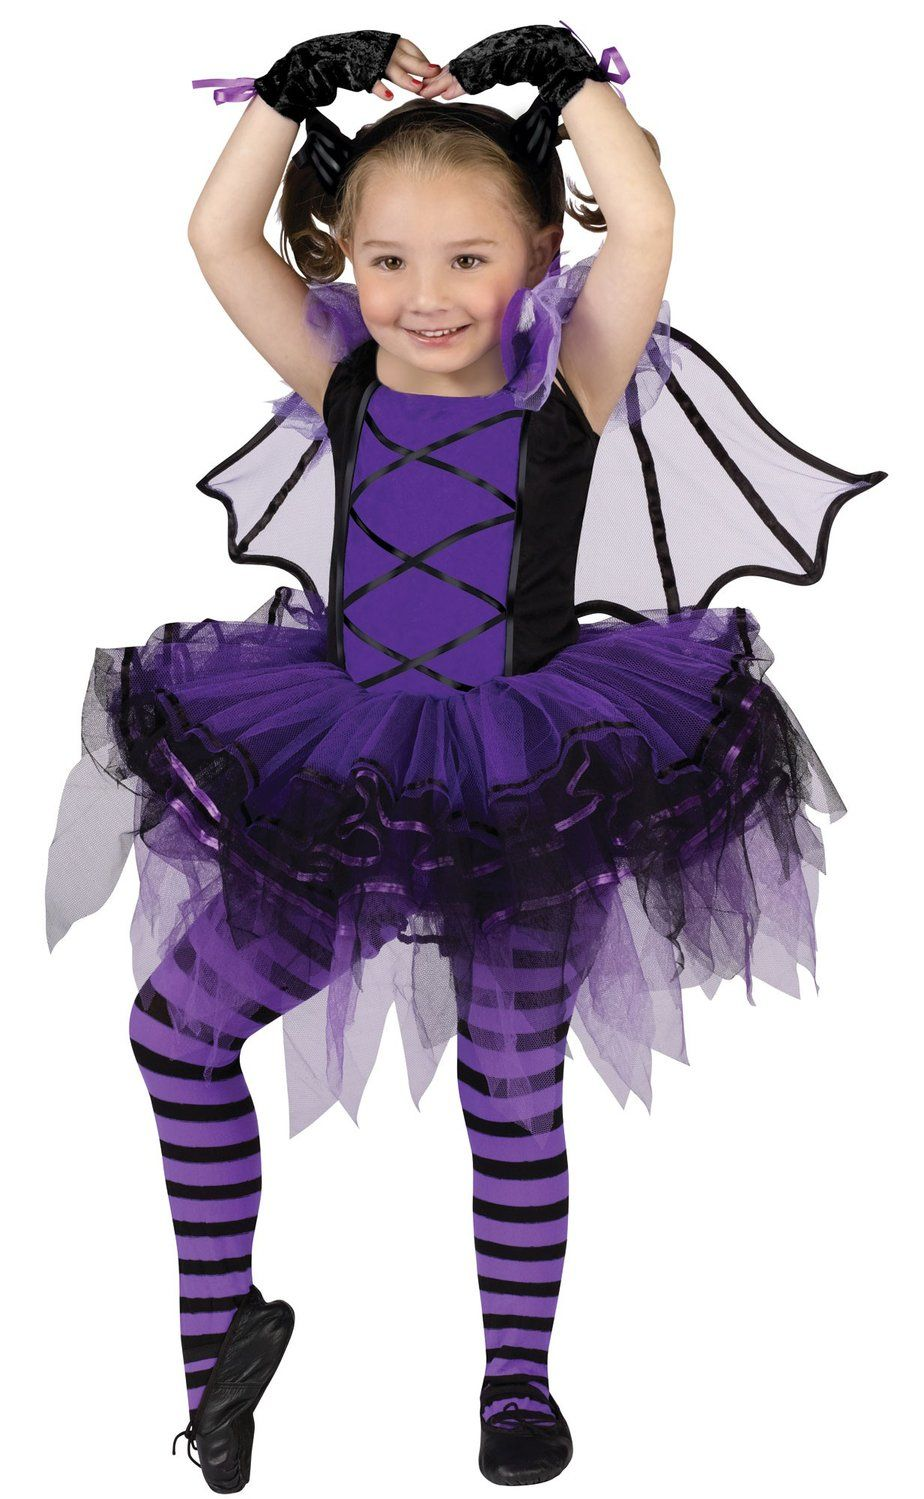 Costume u003eu003e Dark Fairy Costume u003eu003e Kids Batarina  sc 1 st  Pinterest & kid balerinas | ... Costume u003eu003e Dark Fairy Costume u003eu003e Kids Batarina ...